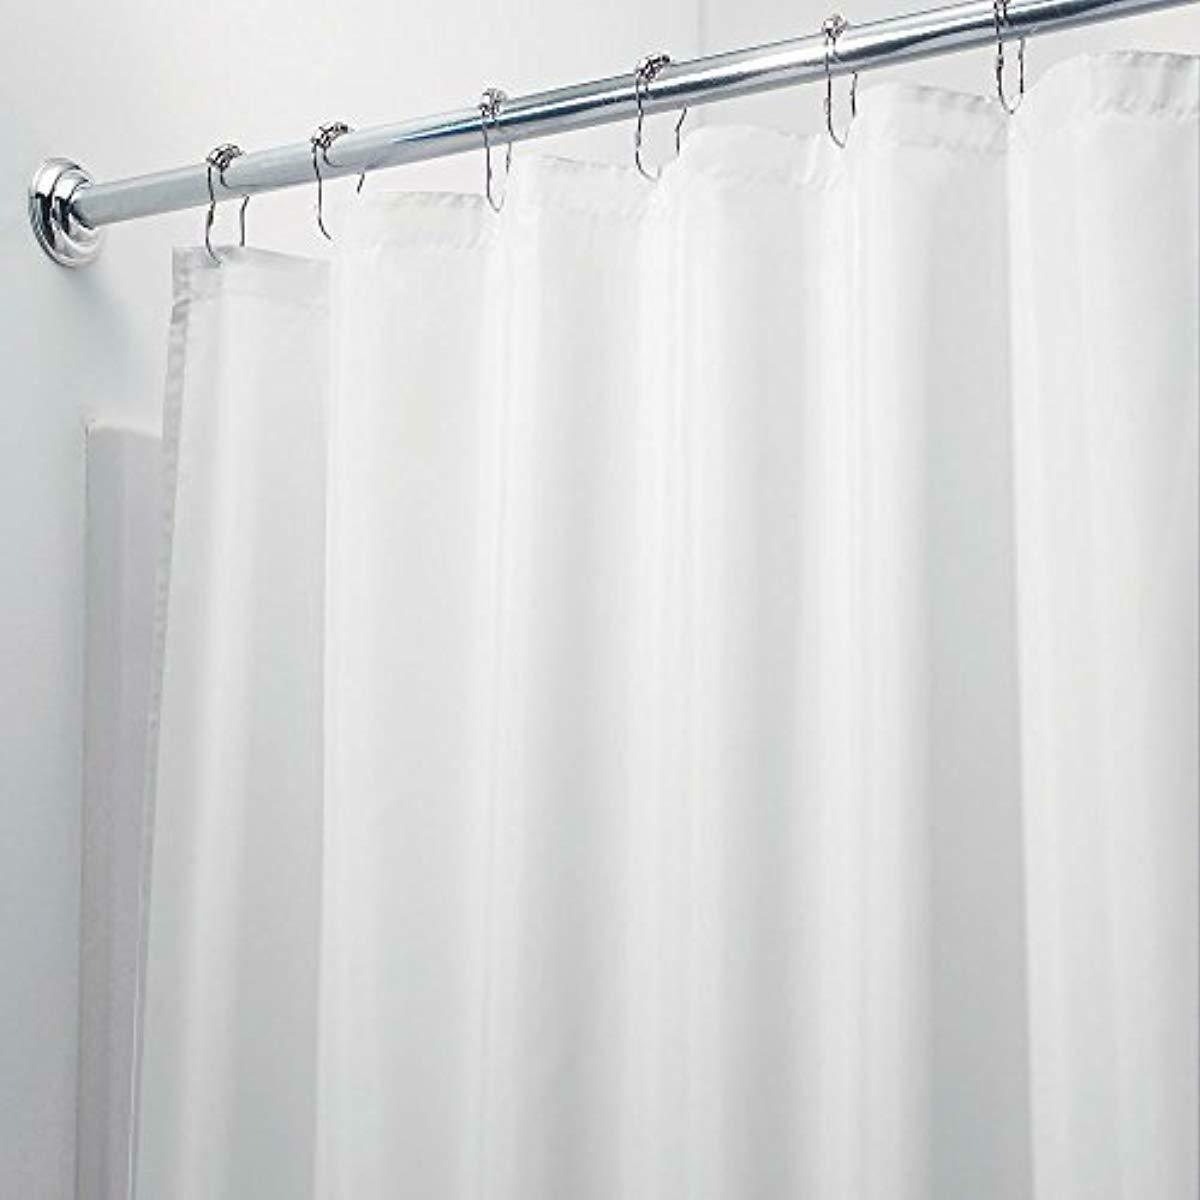 Long Fabric Waterproof Liner Shower Curtain Decor Style 72 X